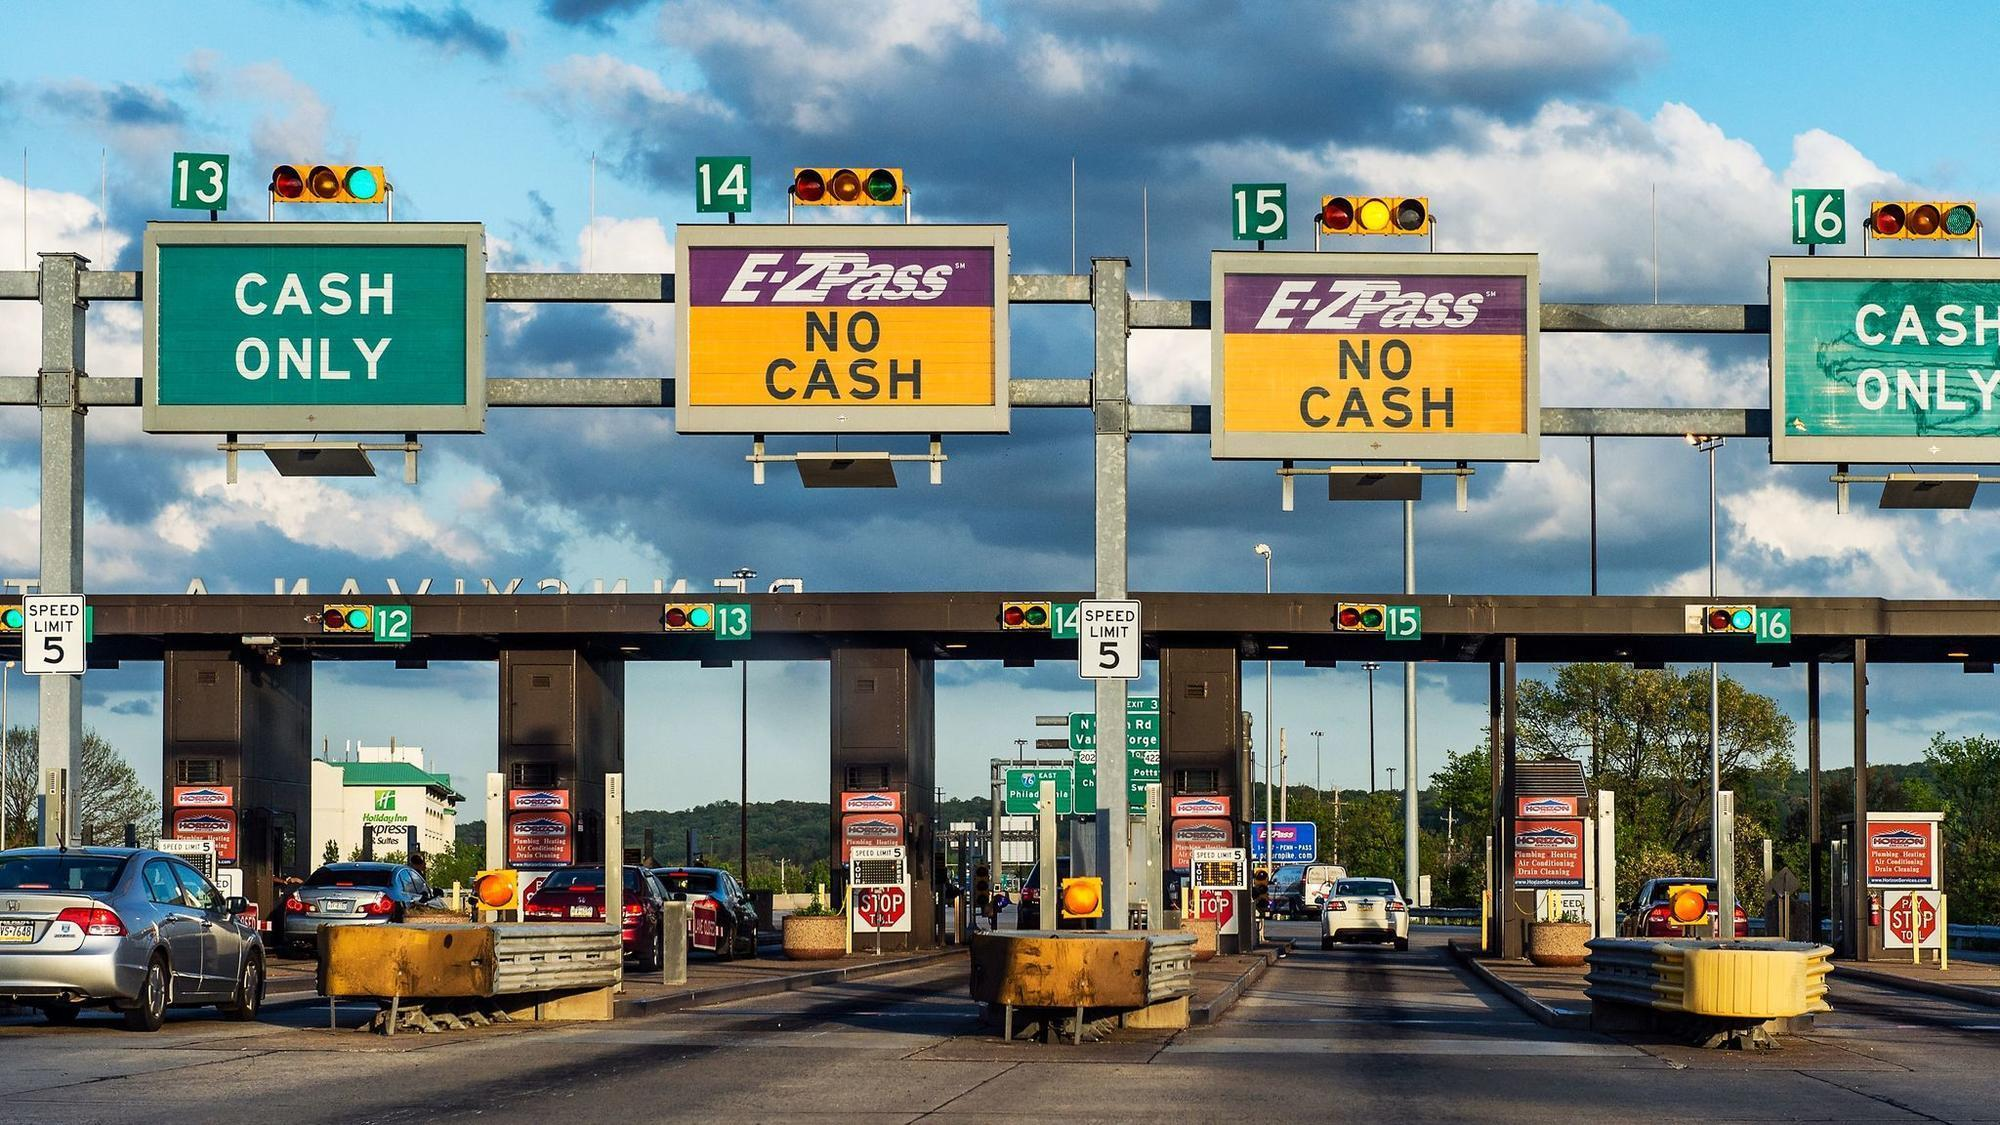 How To Pay Tolls From A Rental Car In Texas